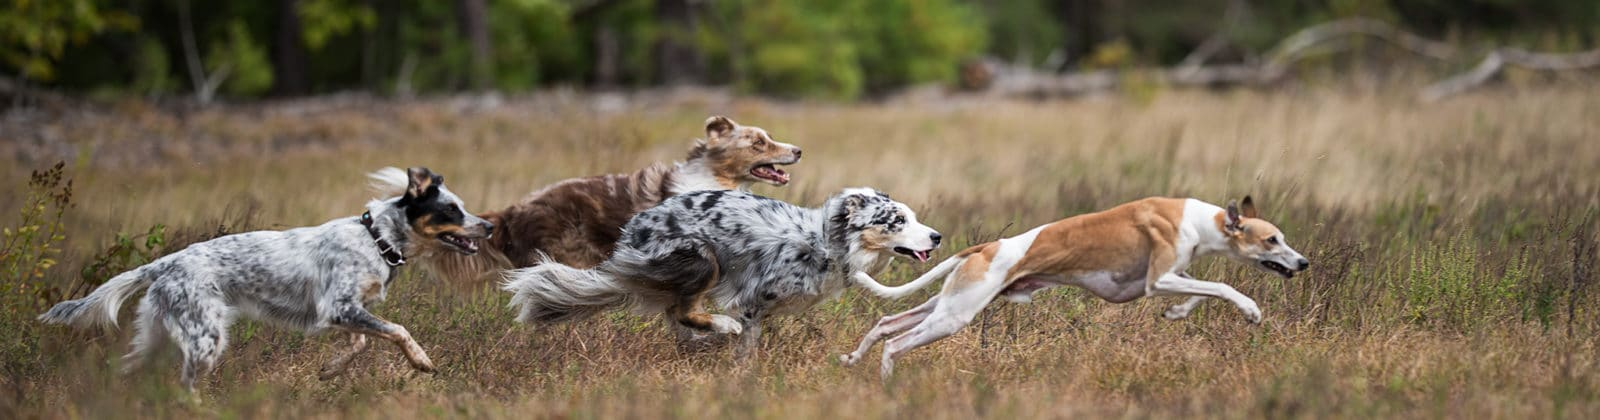 chiens assez exercice